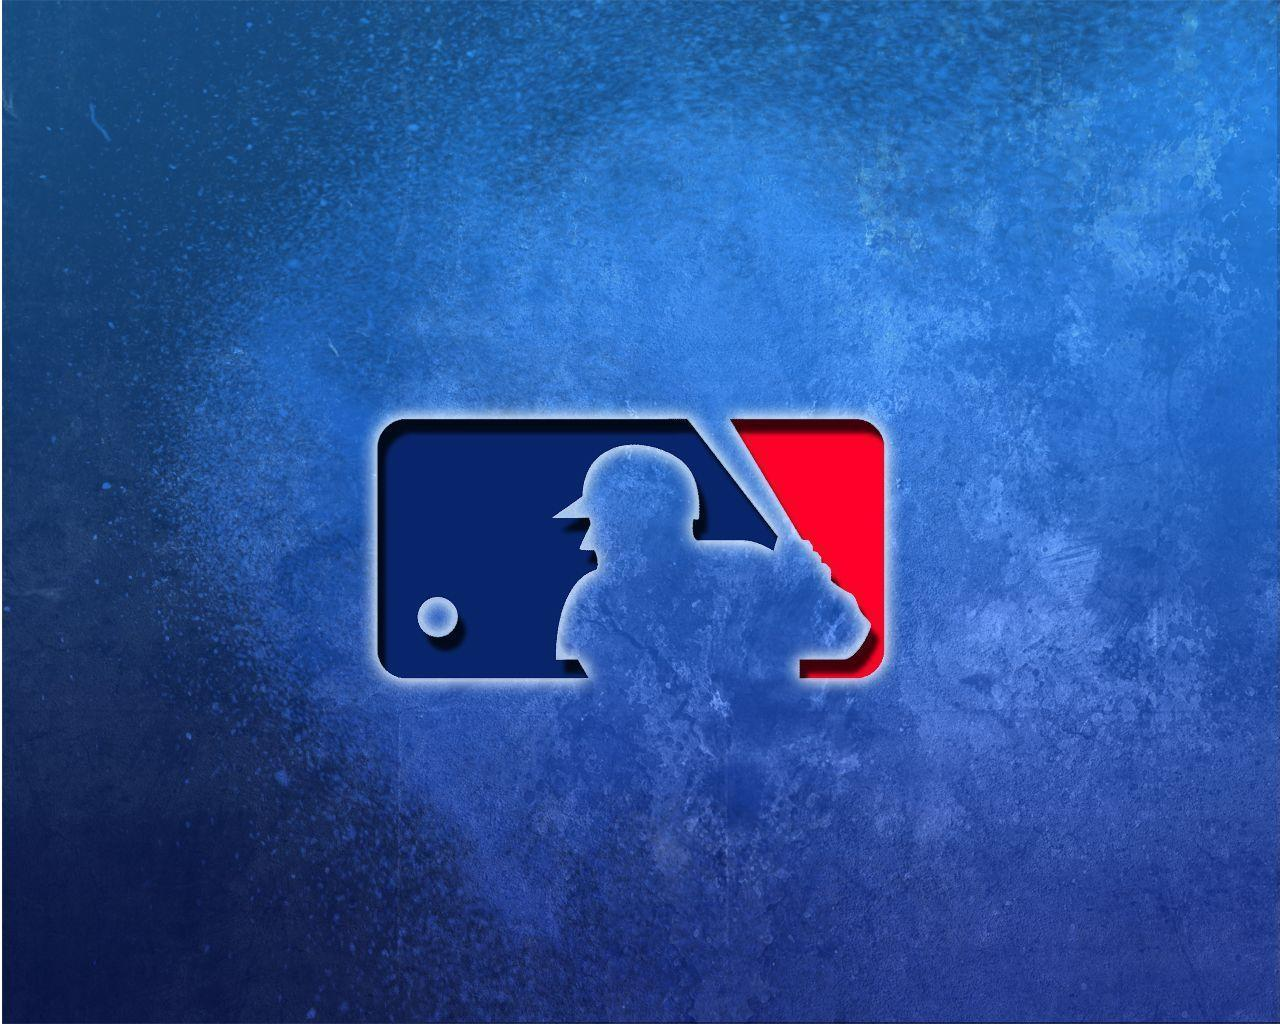 mlb baseball fields wallpaper - photo #33